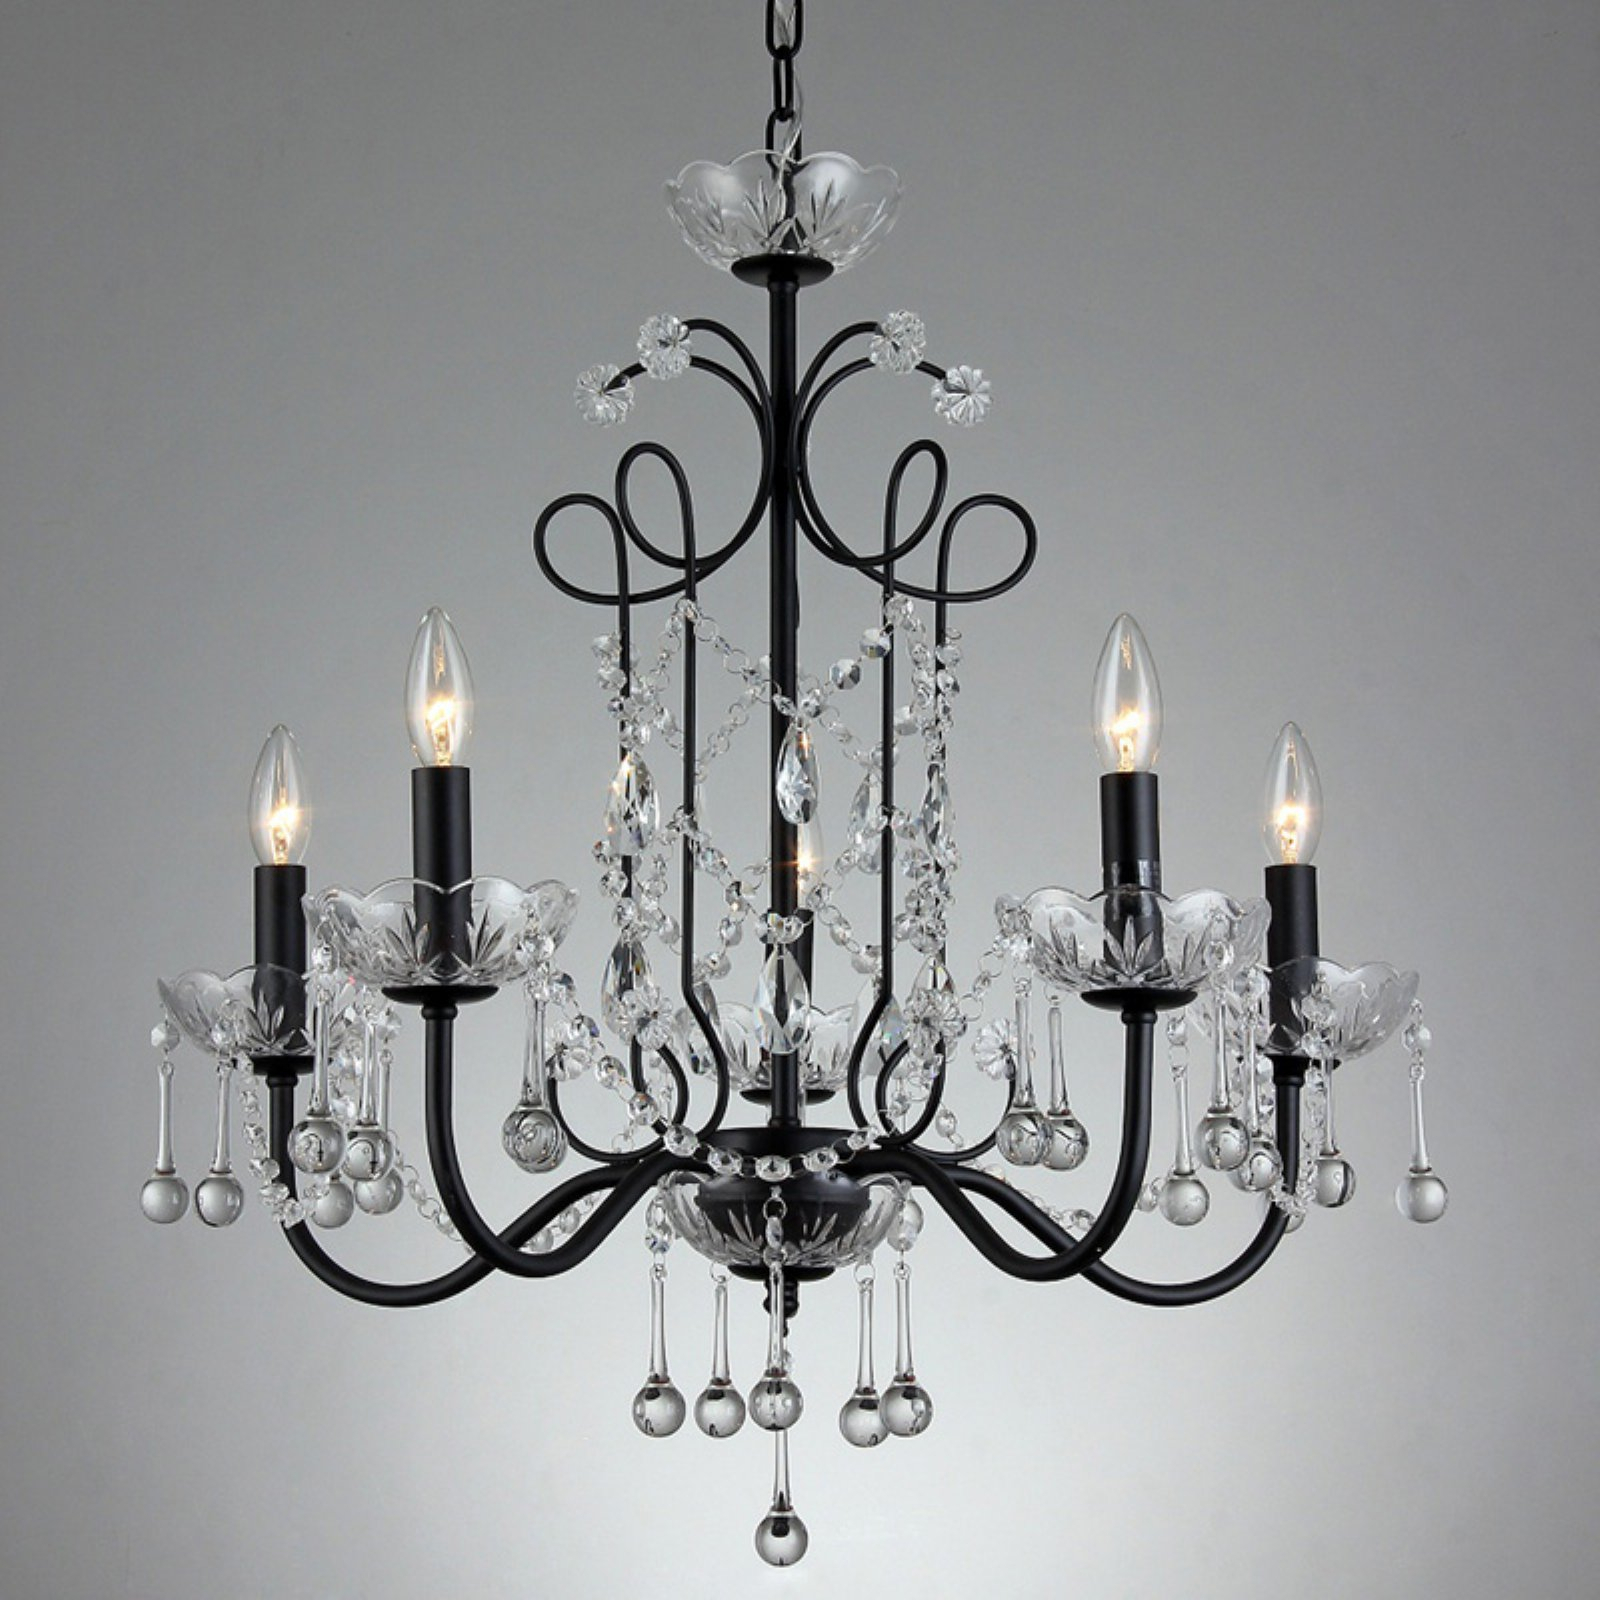 Warehouse Of Tiffany Donna Su7201 5 Chandelier   Products In Within Shaylee 6 Light Candle Style Chandeliers (View 28 of 30)